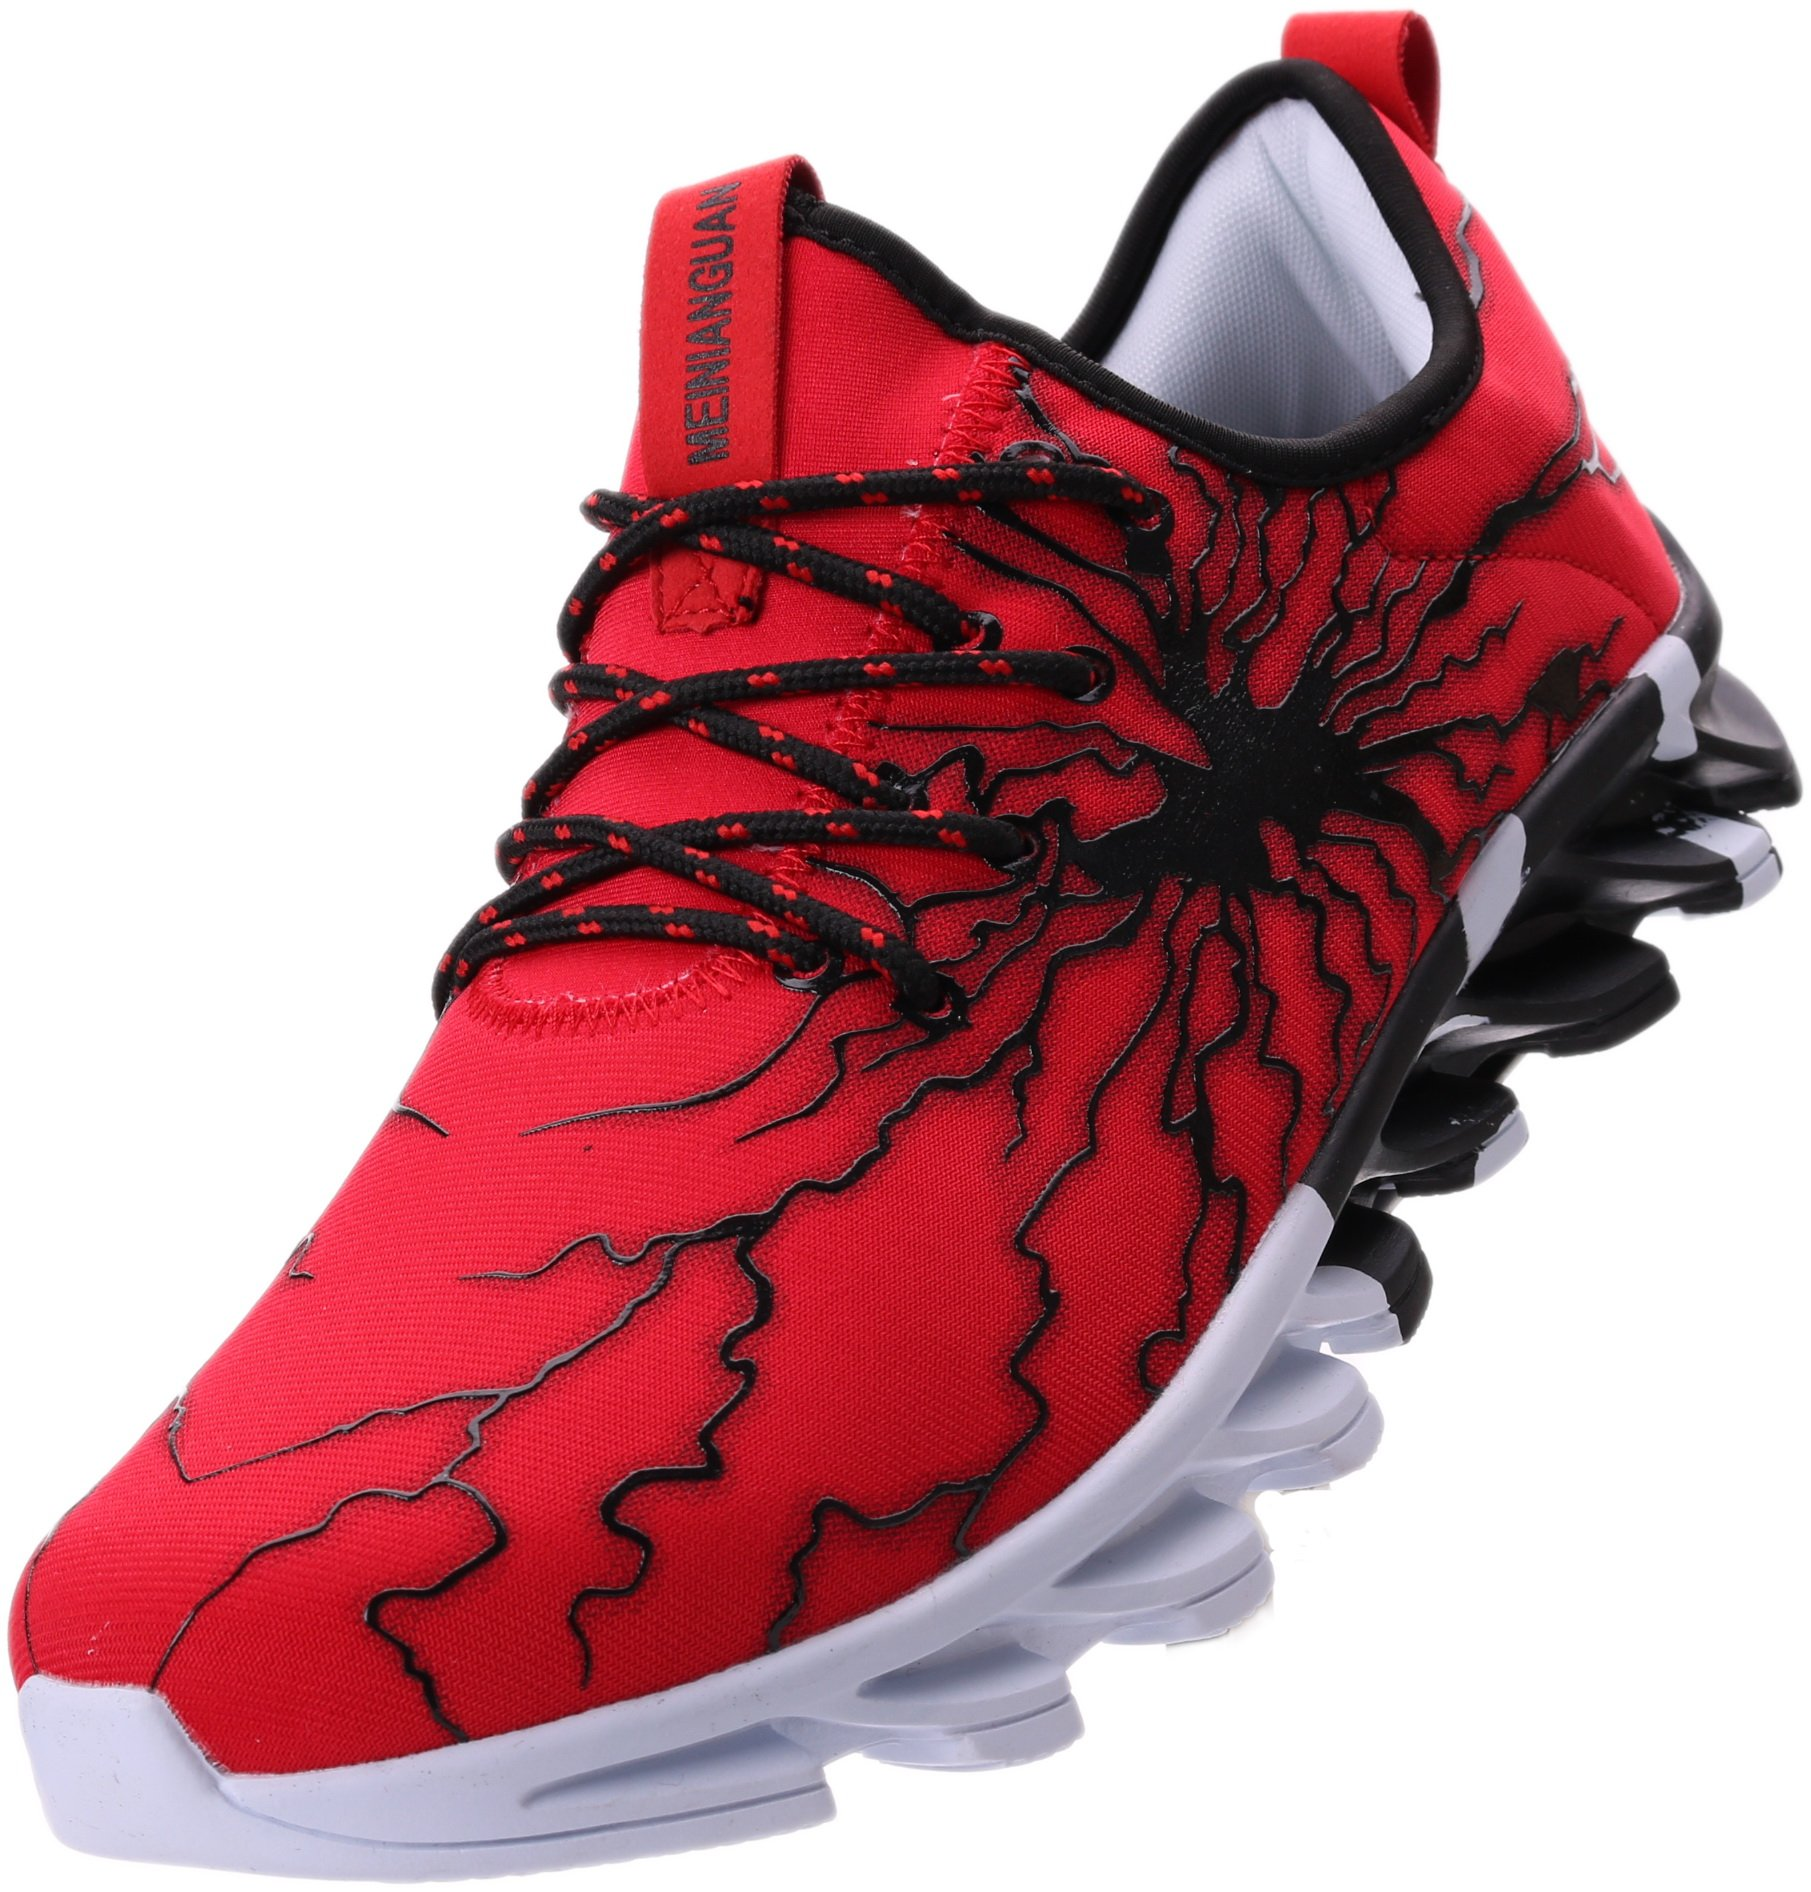 BRONAX Tennis Shoes for Men Slip on Lightweight Street Stylish Lace up Casual Walking Athletic Sports Sneakers for Male Zapatos Sport para Hombre Red Size 13 by BRONAX